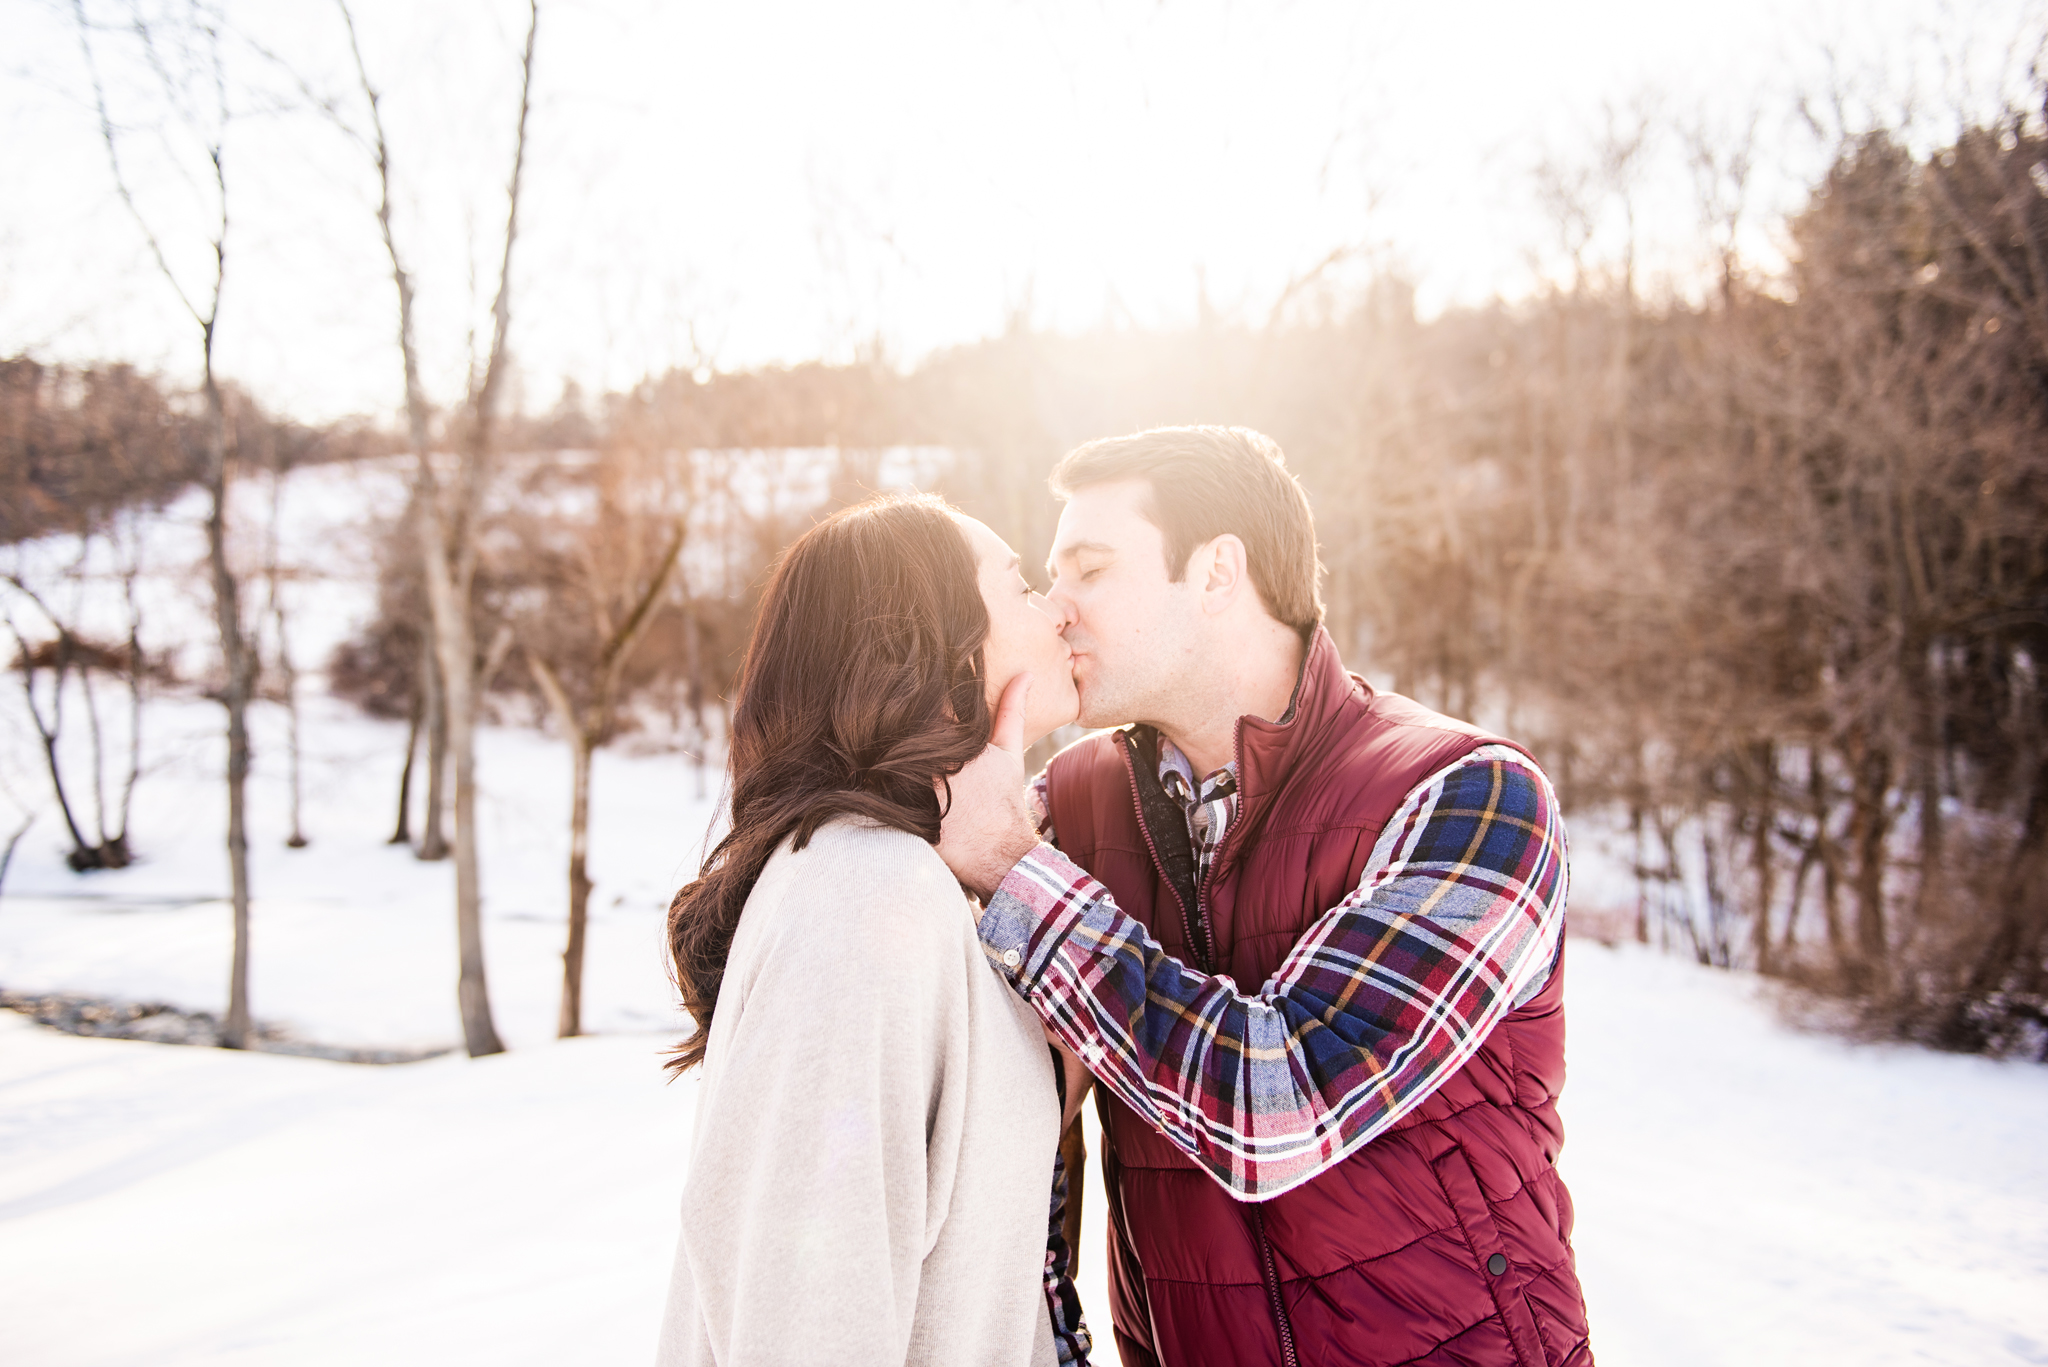 Fallbrook_Central_NY_Engagement_Session_JILL_STUDIO_Rochester_NY_Photographer_DSC_4672.jpg